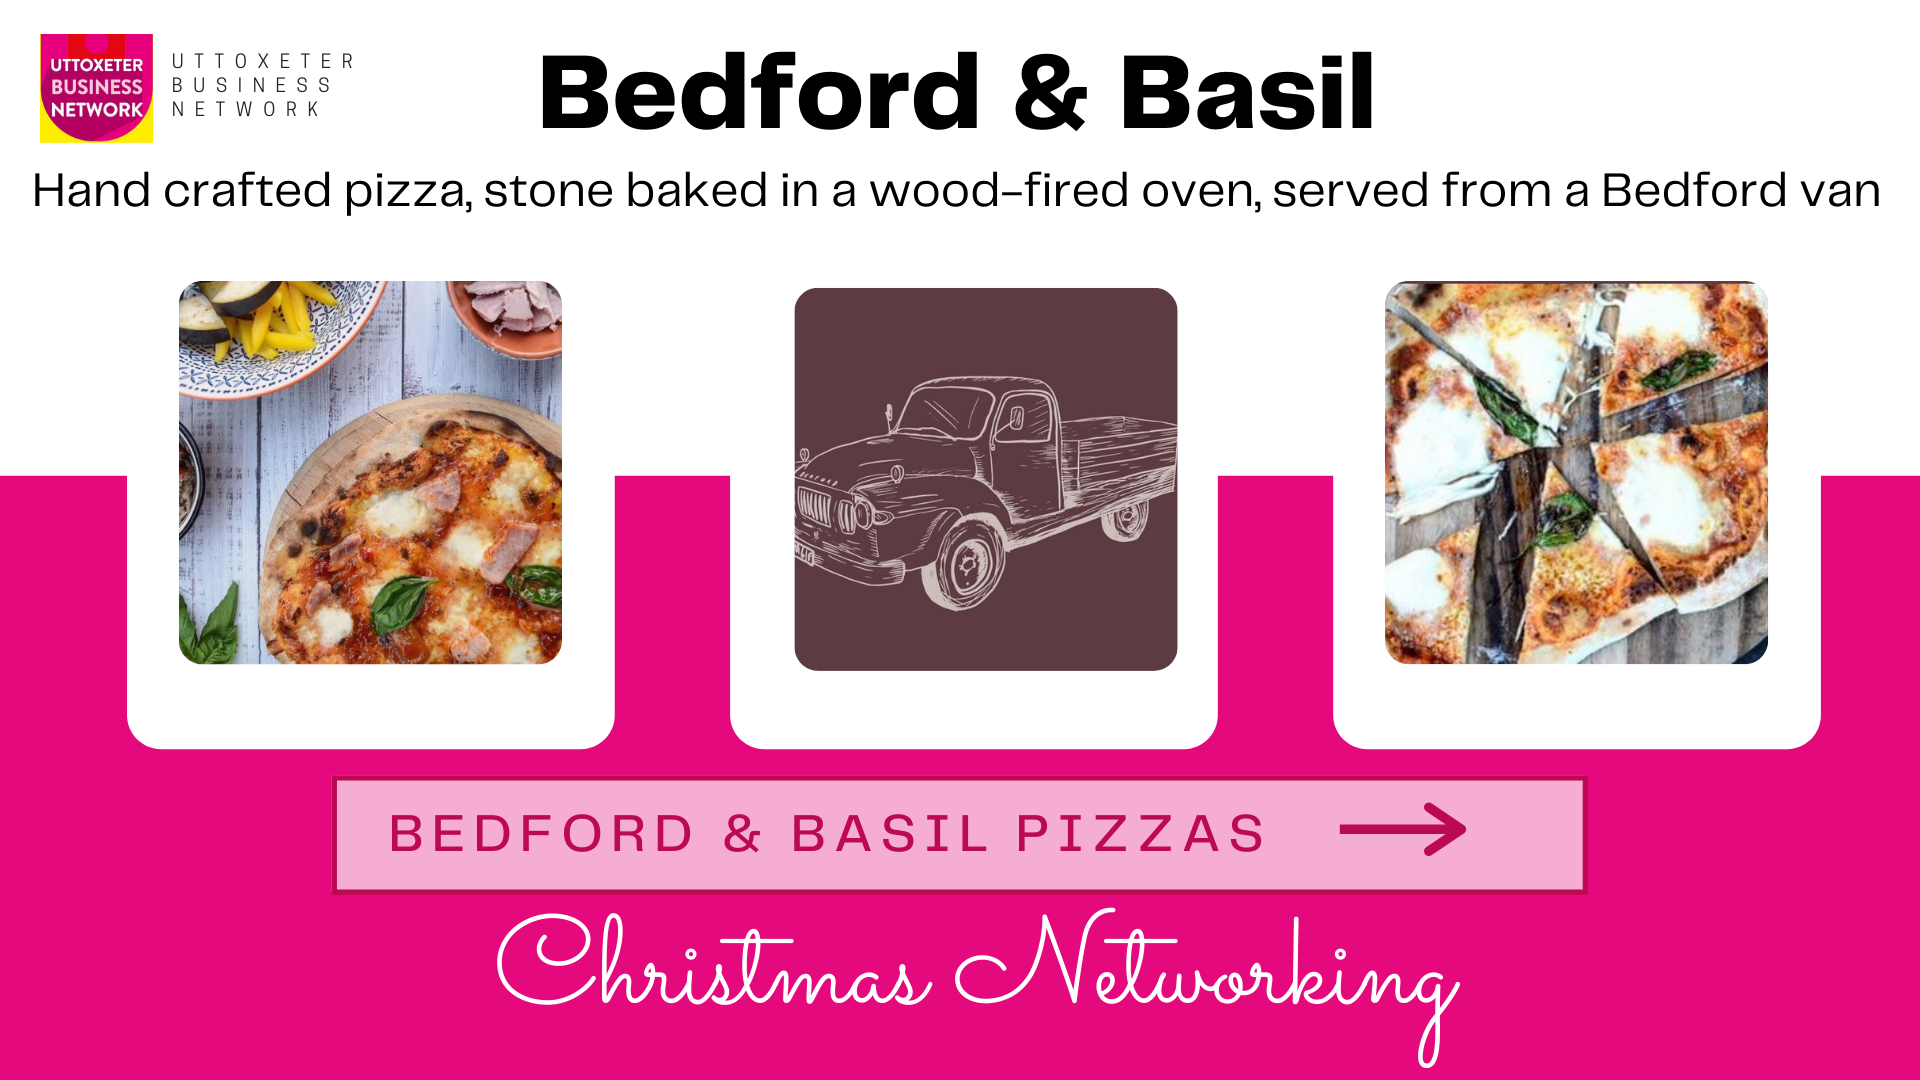 Bedford and Basil pizzas